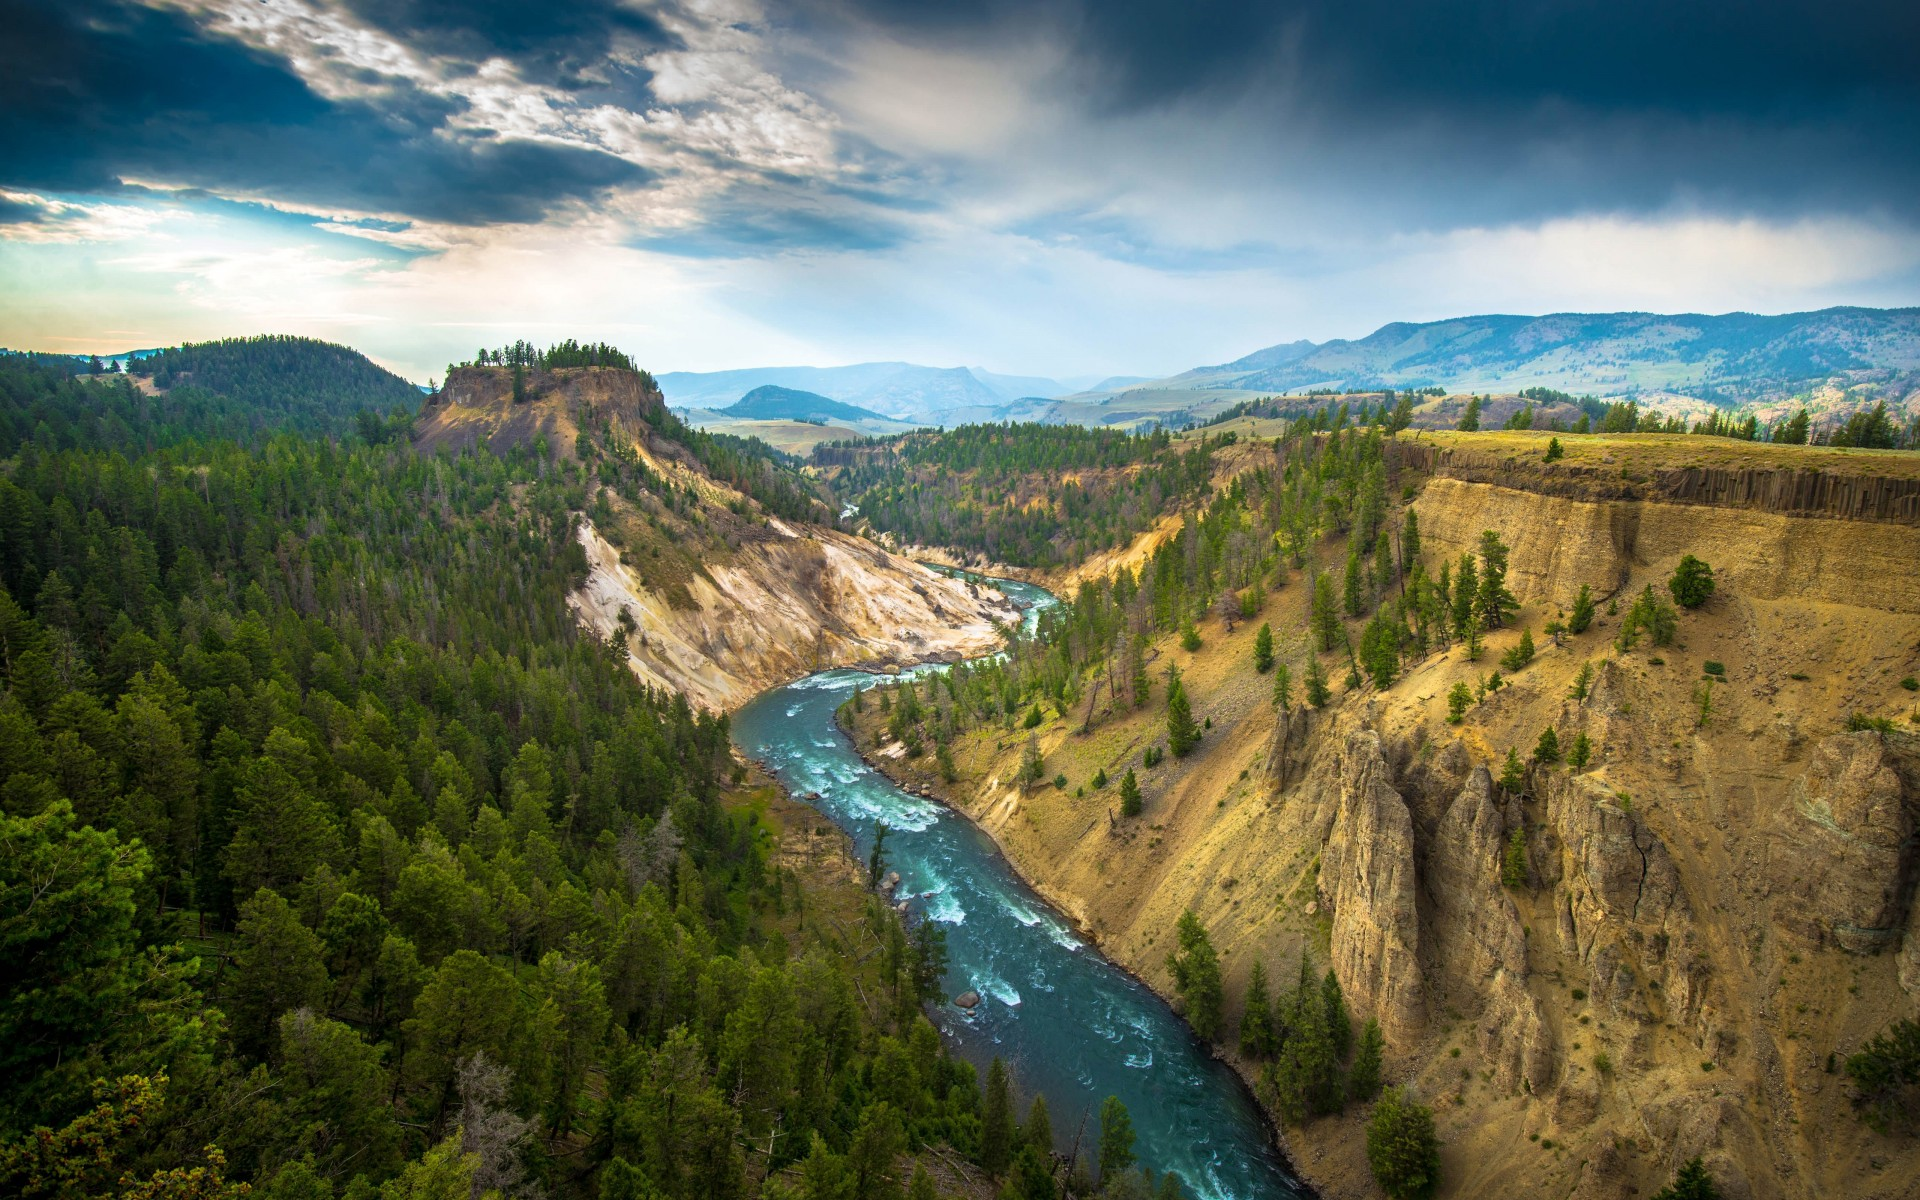 The River, Grand Canyon of Yellowstone National Park, USA Wallpaper for Desktop 1920x1200